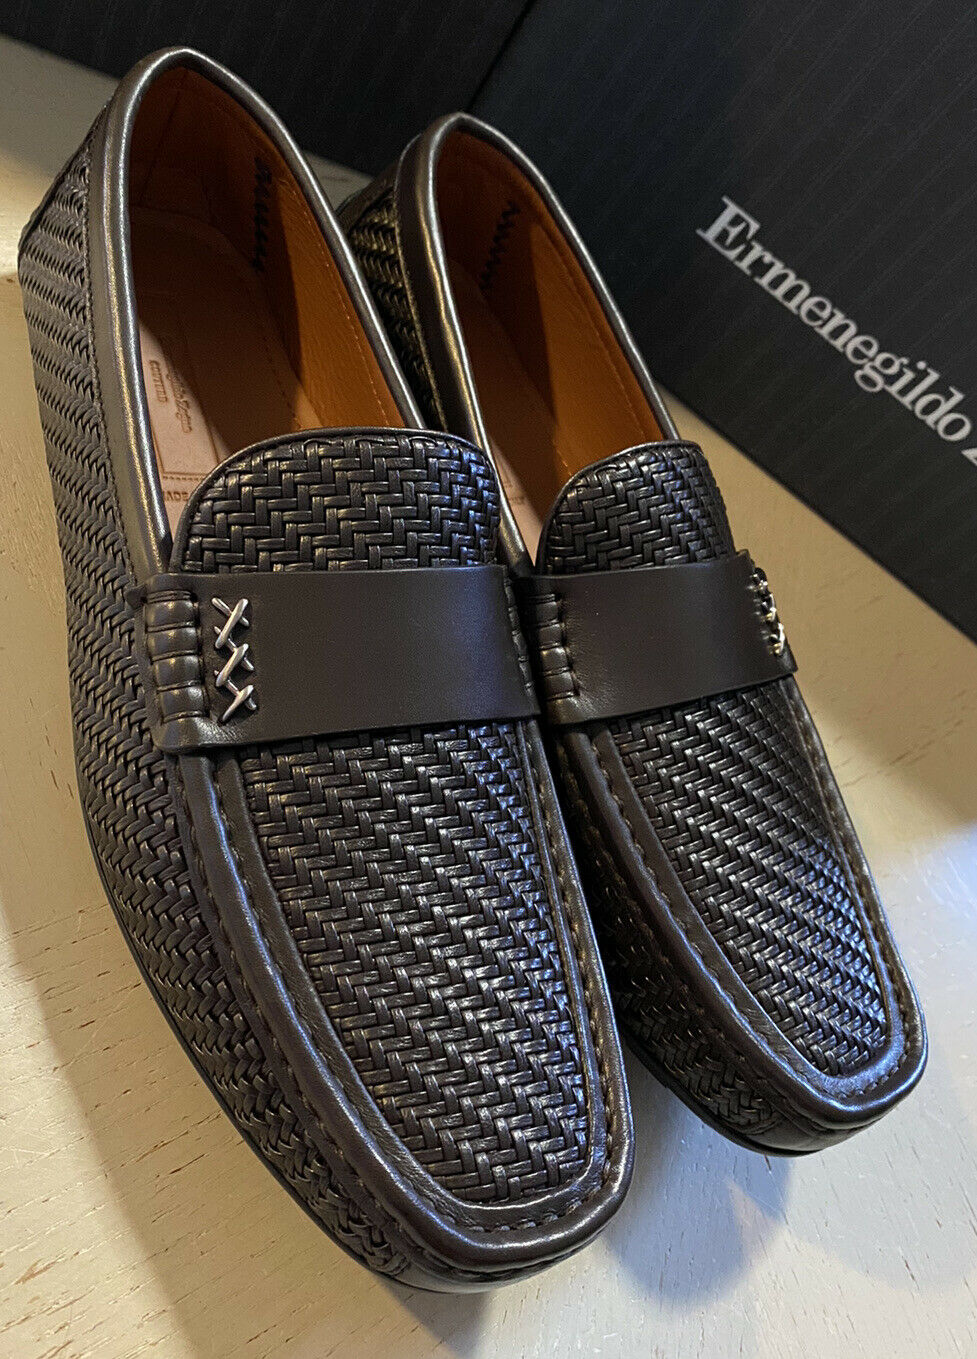 New $895 Ermenegildo Zegna Couture Leather Driver Shoes DK Brown 9.5 US Italy